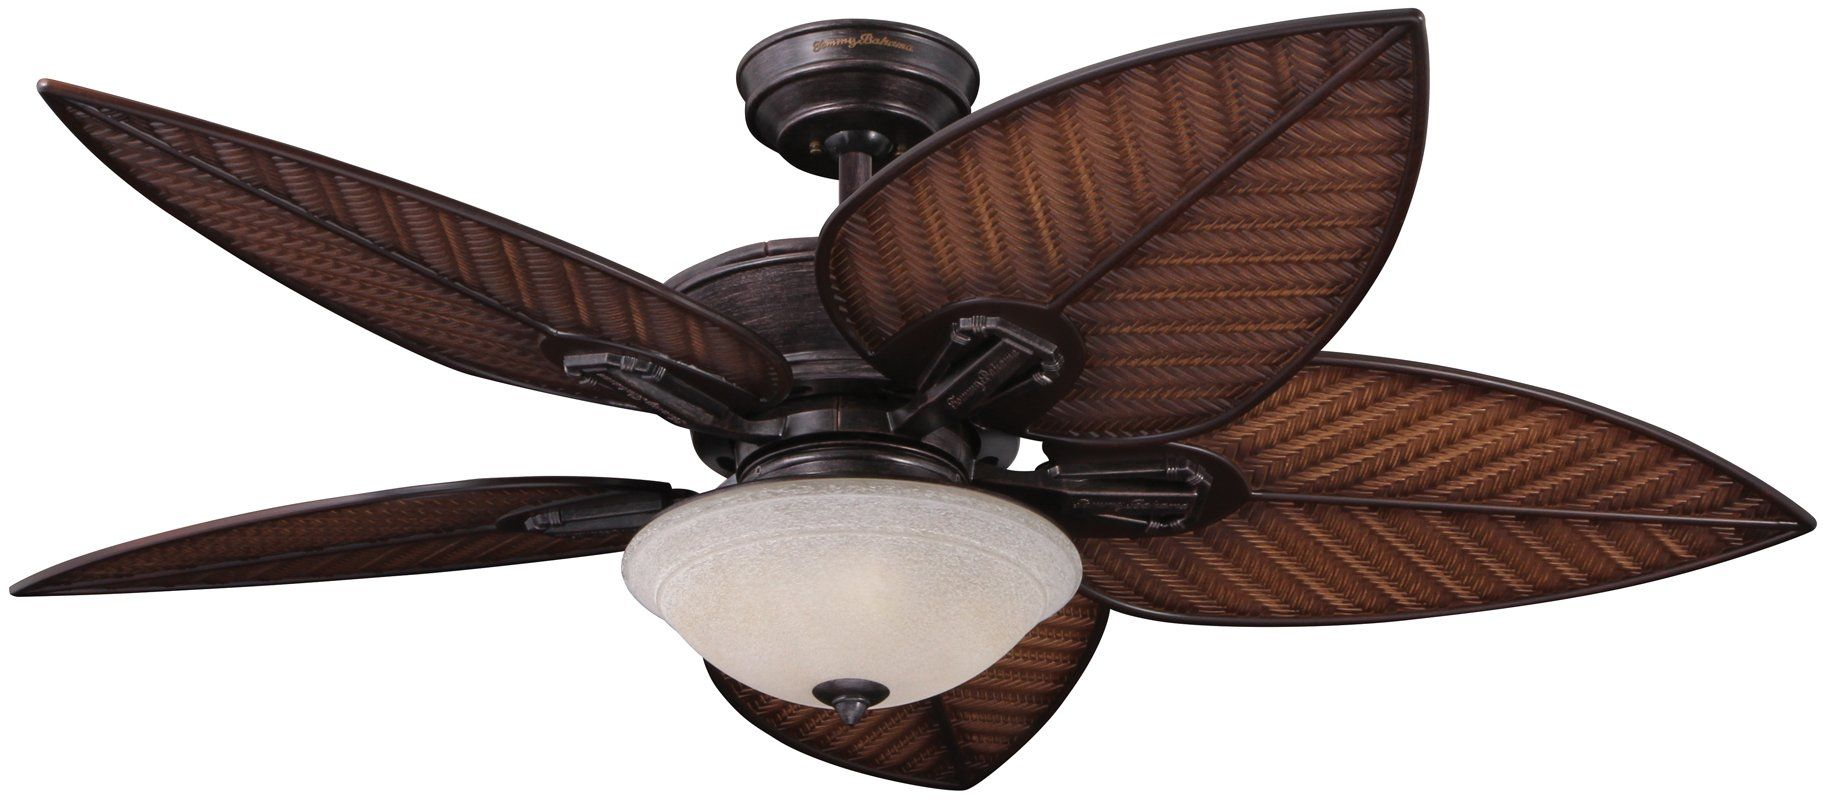 tuscany glass cfm antique blade lighting amazon etched fan finish magnifying image in ceilings shown carmel fans ceiling thomasville and crackle item seeded inch